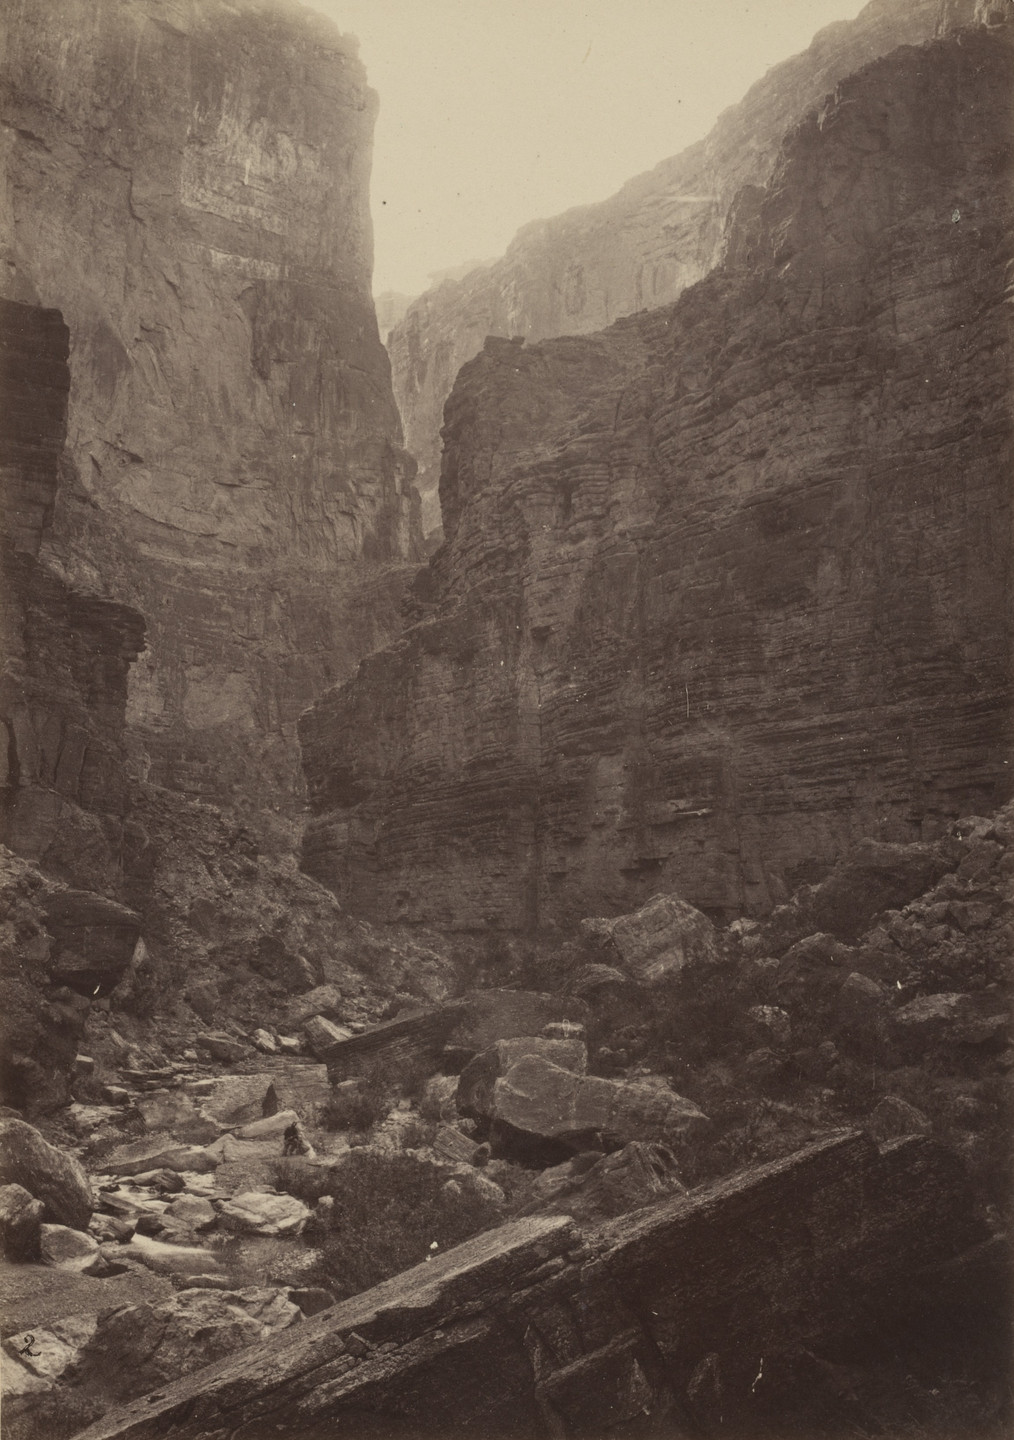 Timothy O'Sullivan, William H. Bell. Canyon of Kanab Wash, Colorado River, Looking North. Seasons of 1871, 1872 and 1873